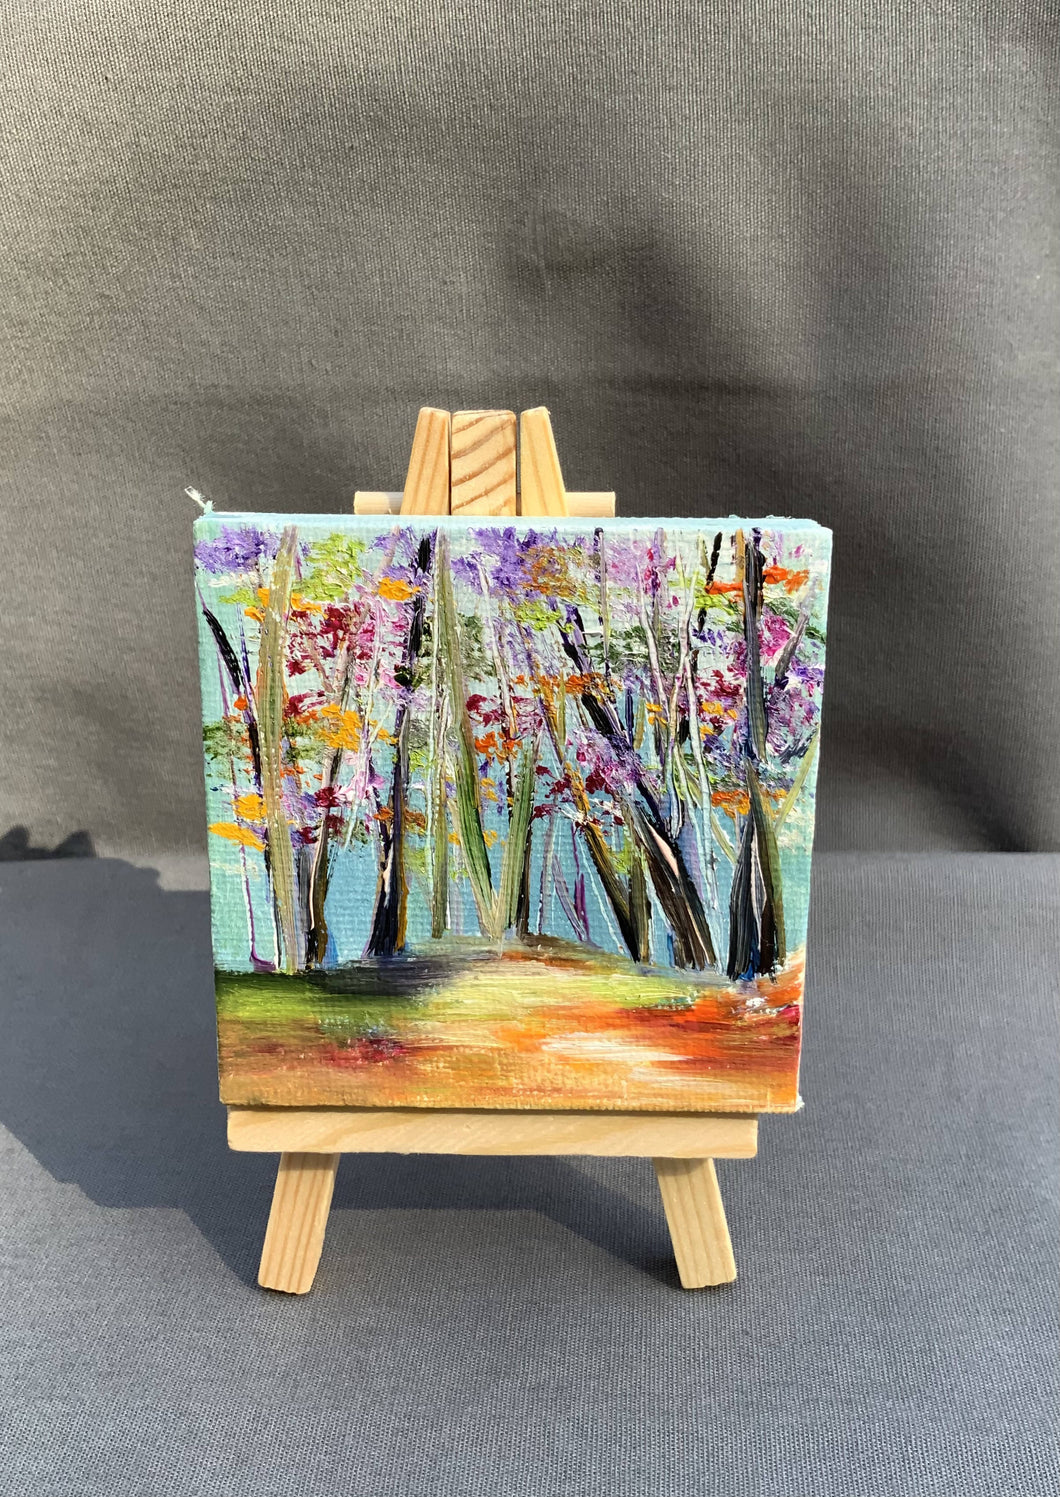 Mini oil painting of a colorful forest